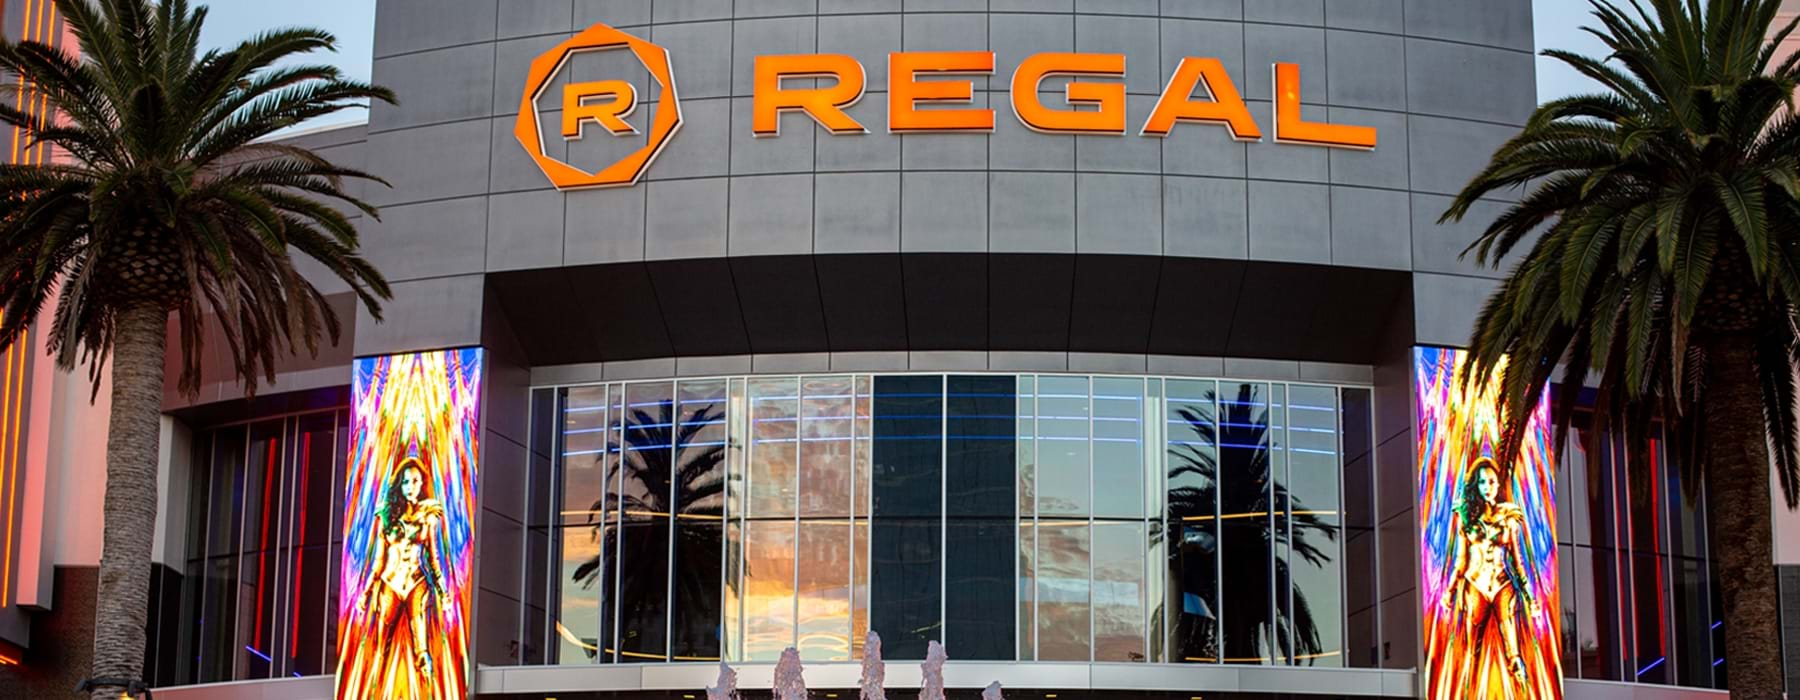 Regal movie theater at Irvine Spectrum Center